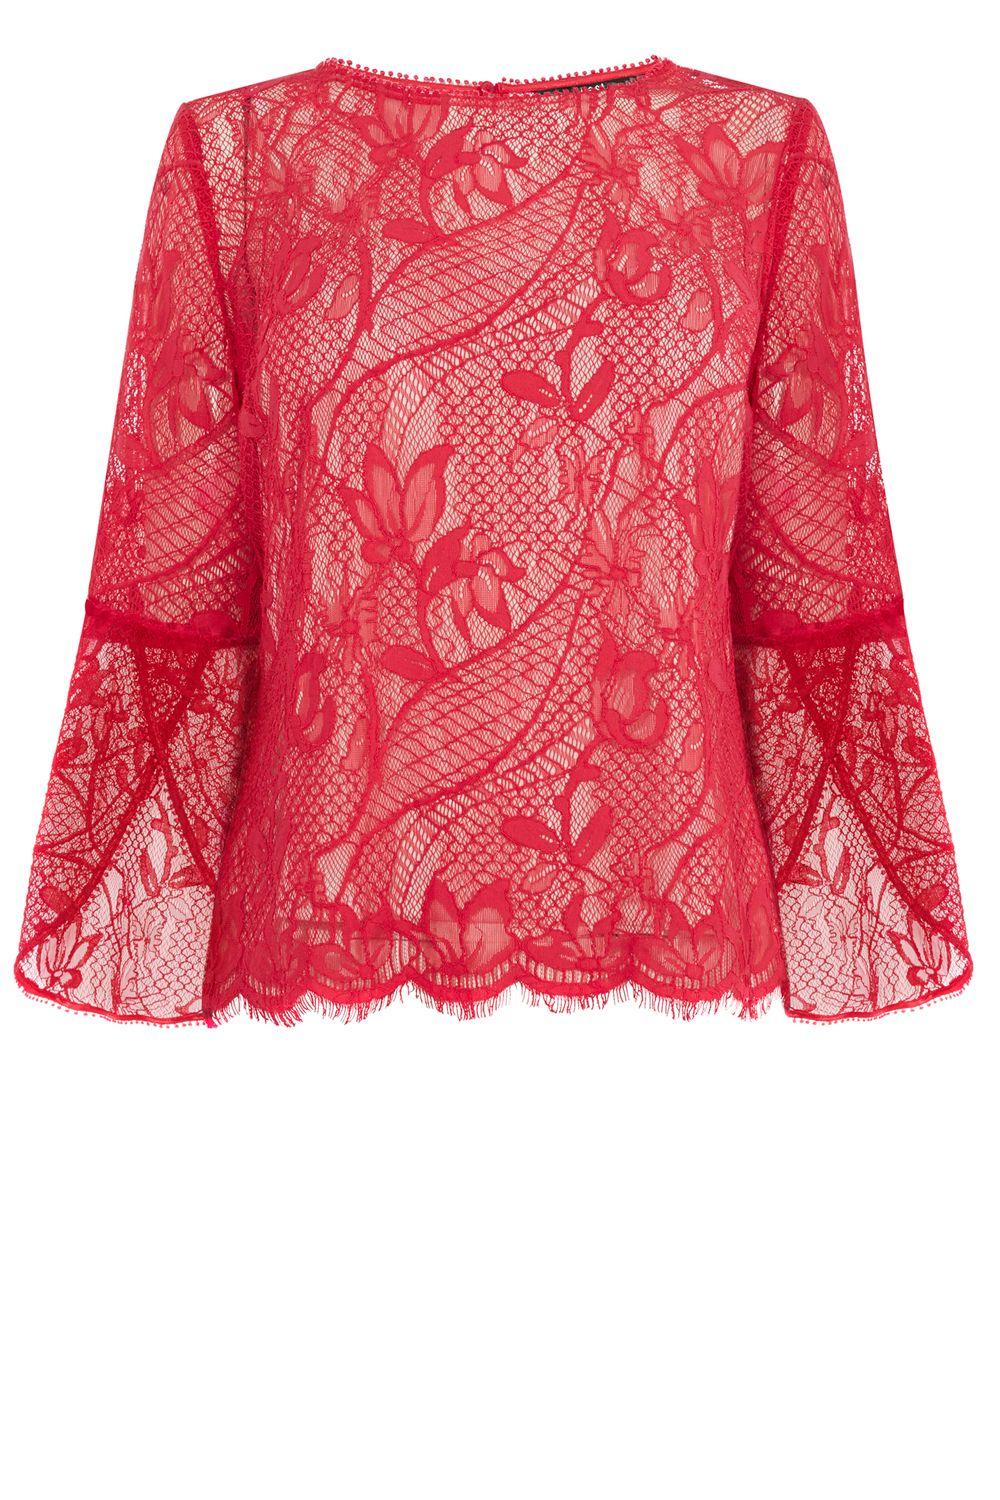 Coast Tricia Lace Top, Multi-Coloured